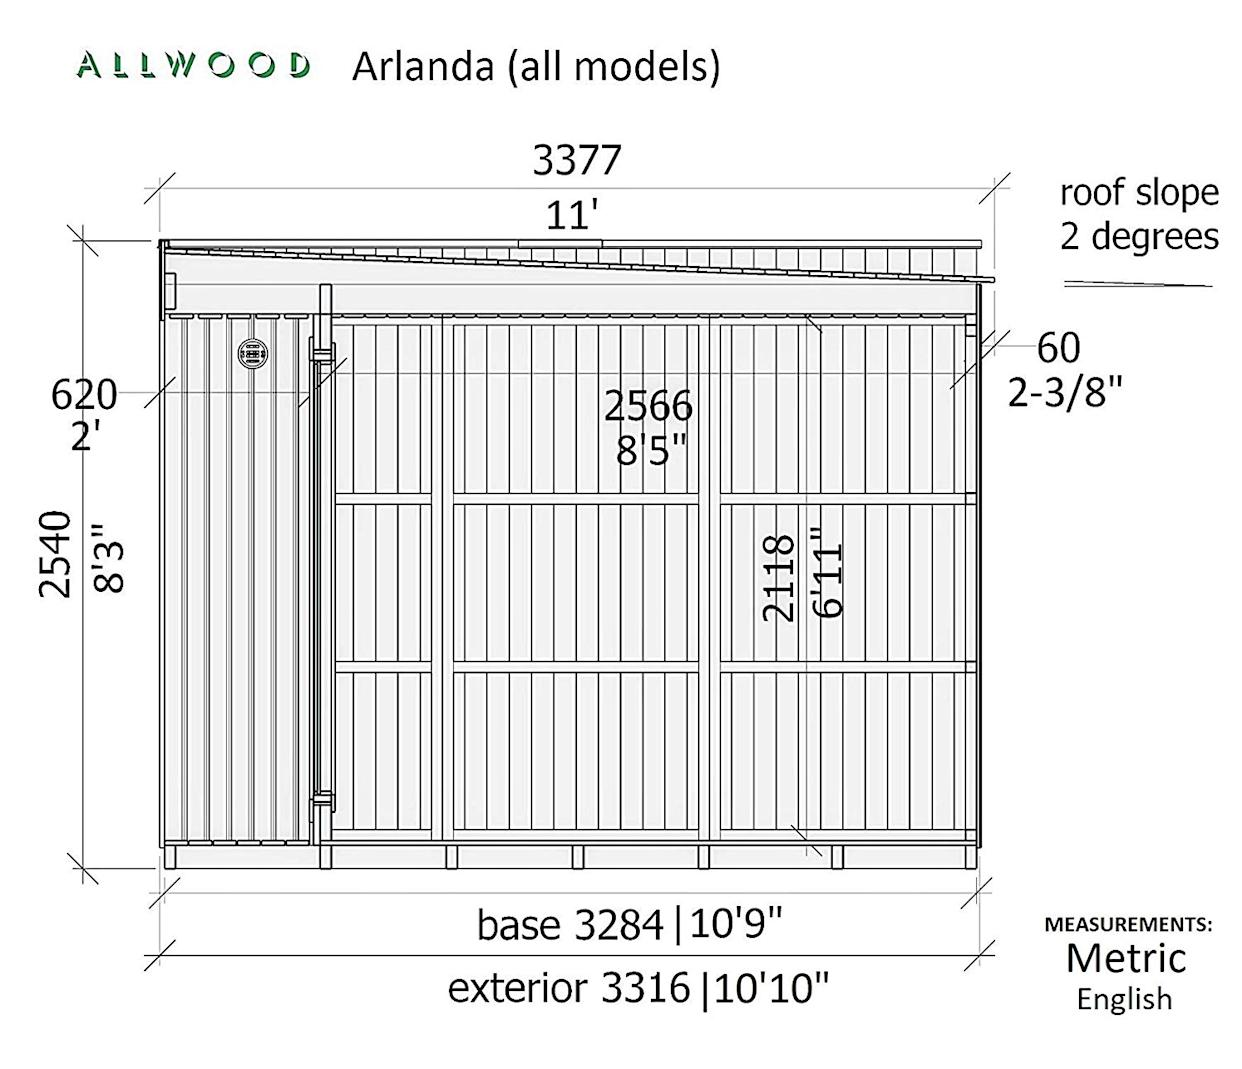 Amazon sells a DIY tiny house kit you can build yourself in